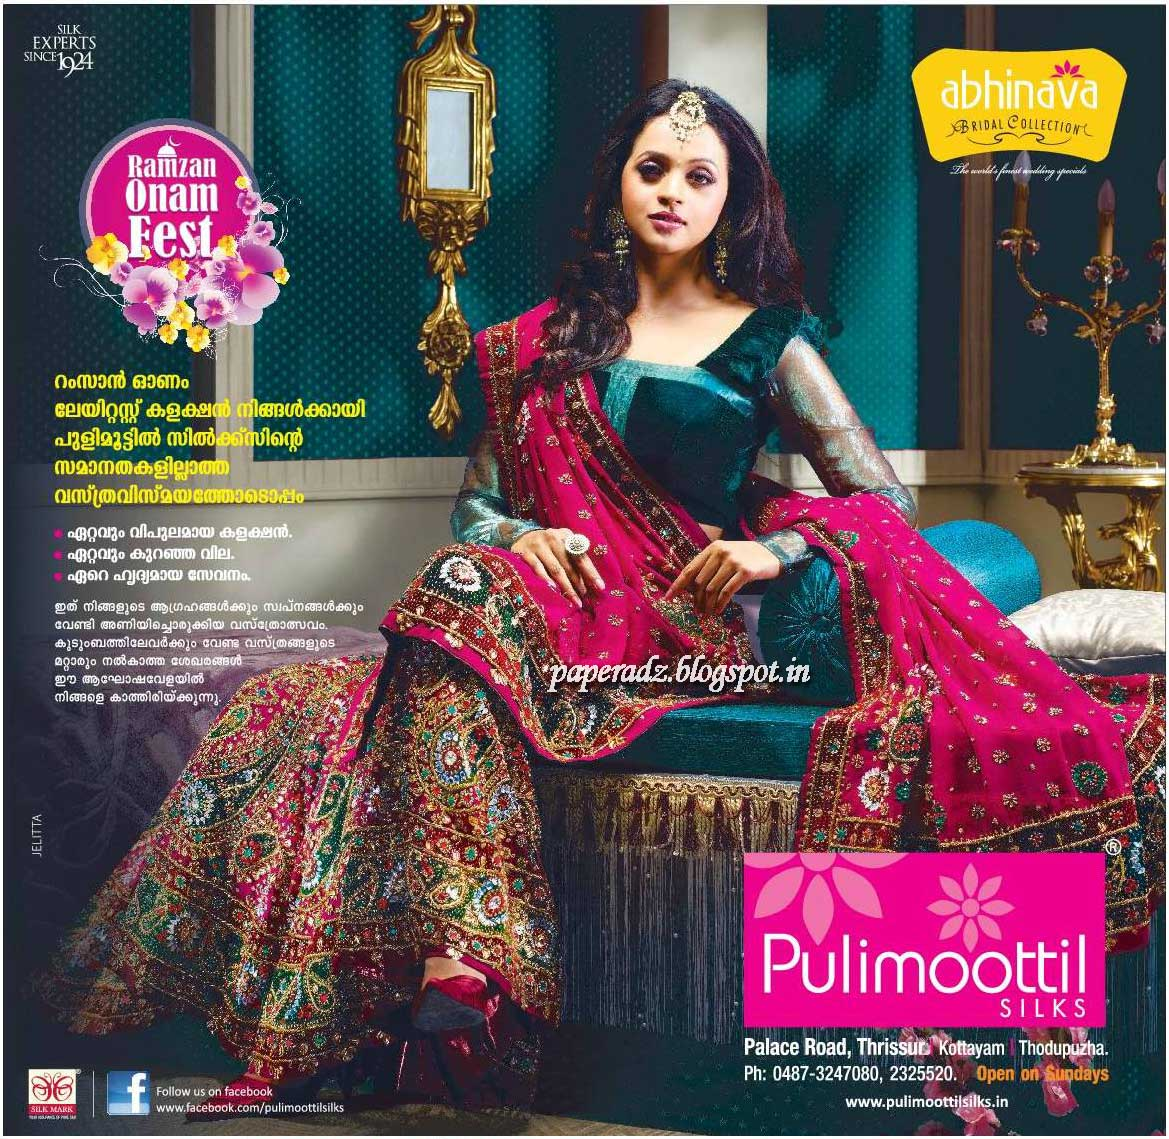 Pulimoottil silks thodupuzha actress bhavana for Hm diwan jewellers